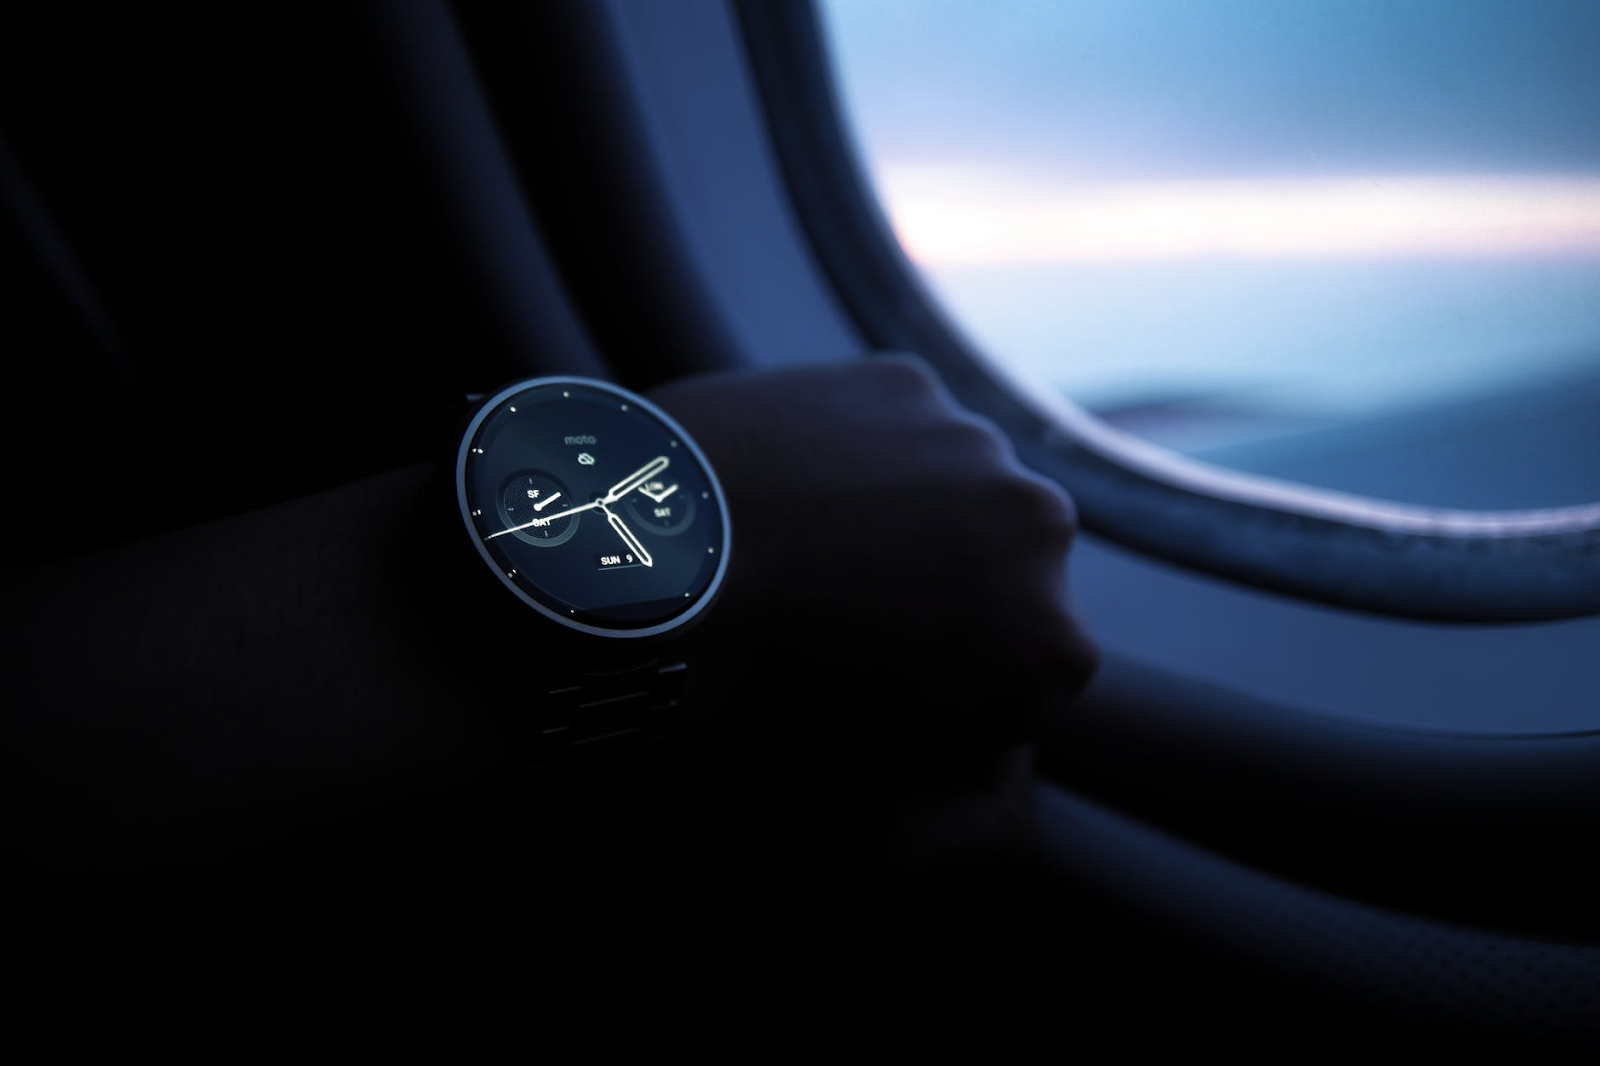 Amazfit GTR - The Best Smartwatch On The Planet?